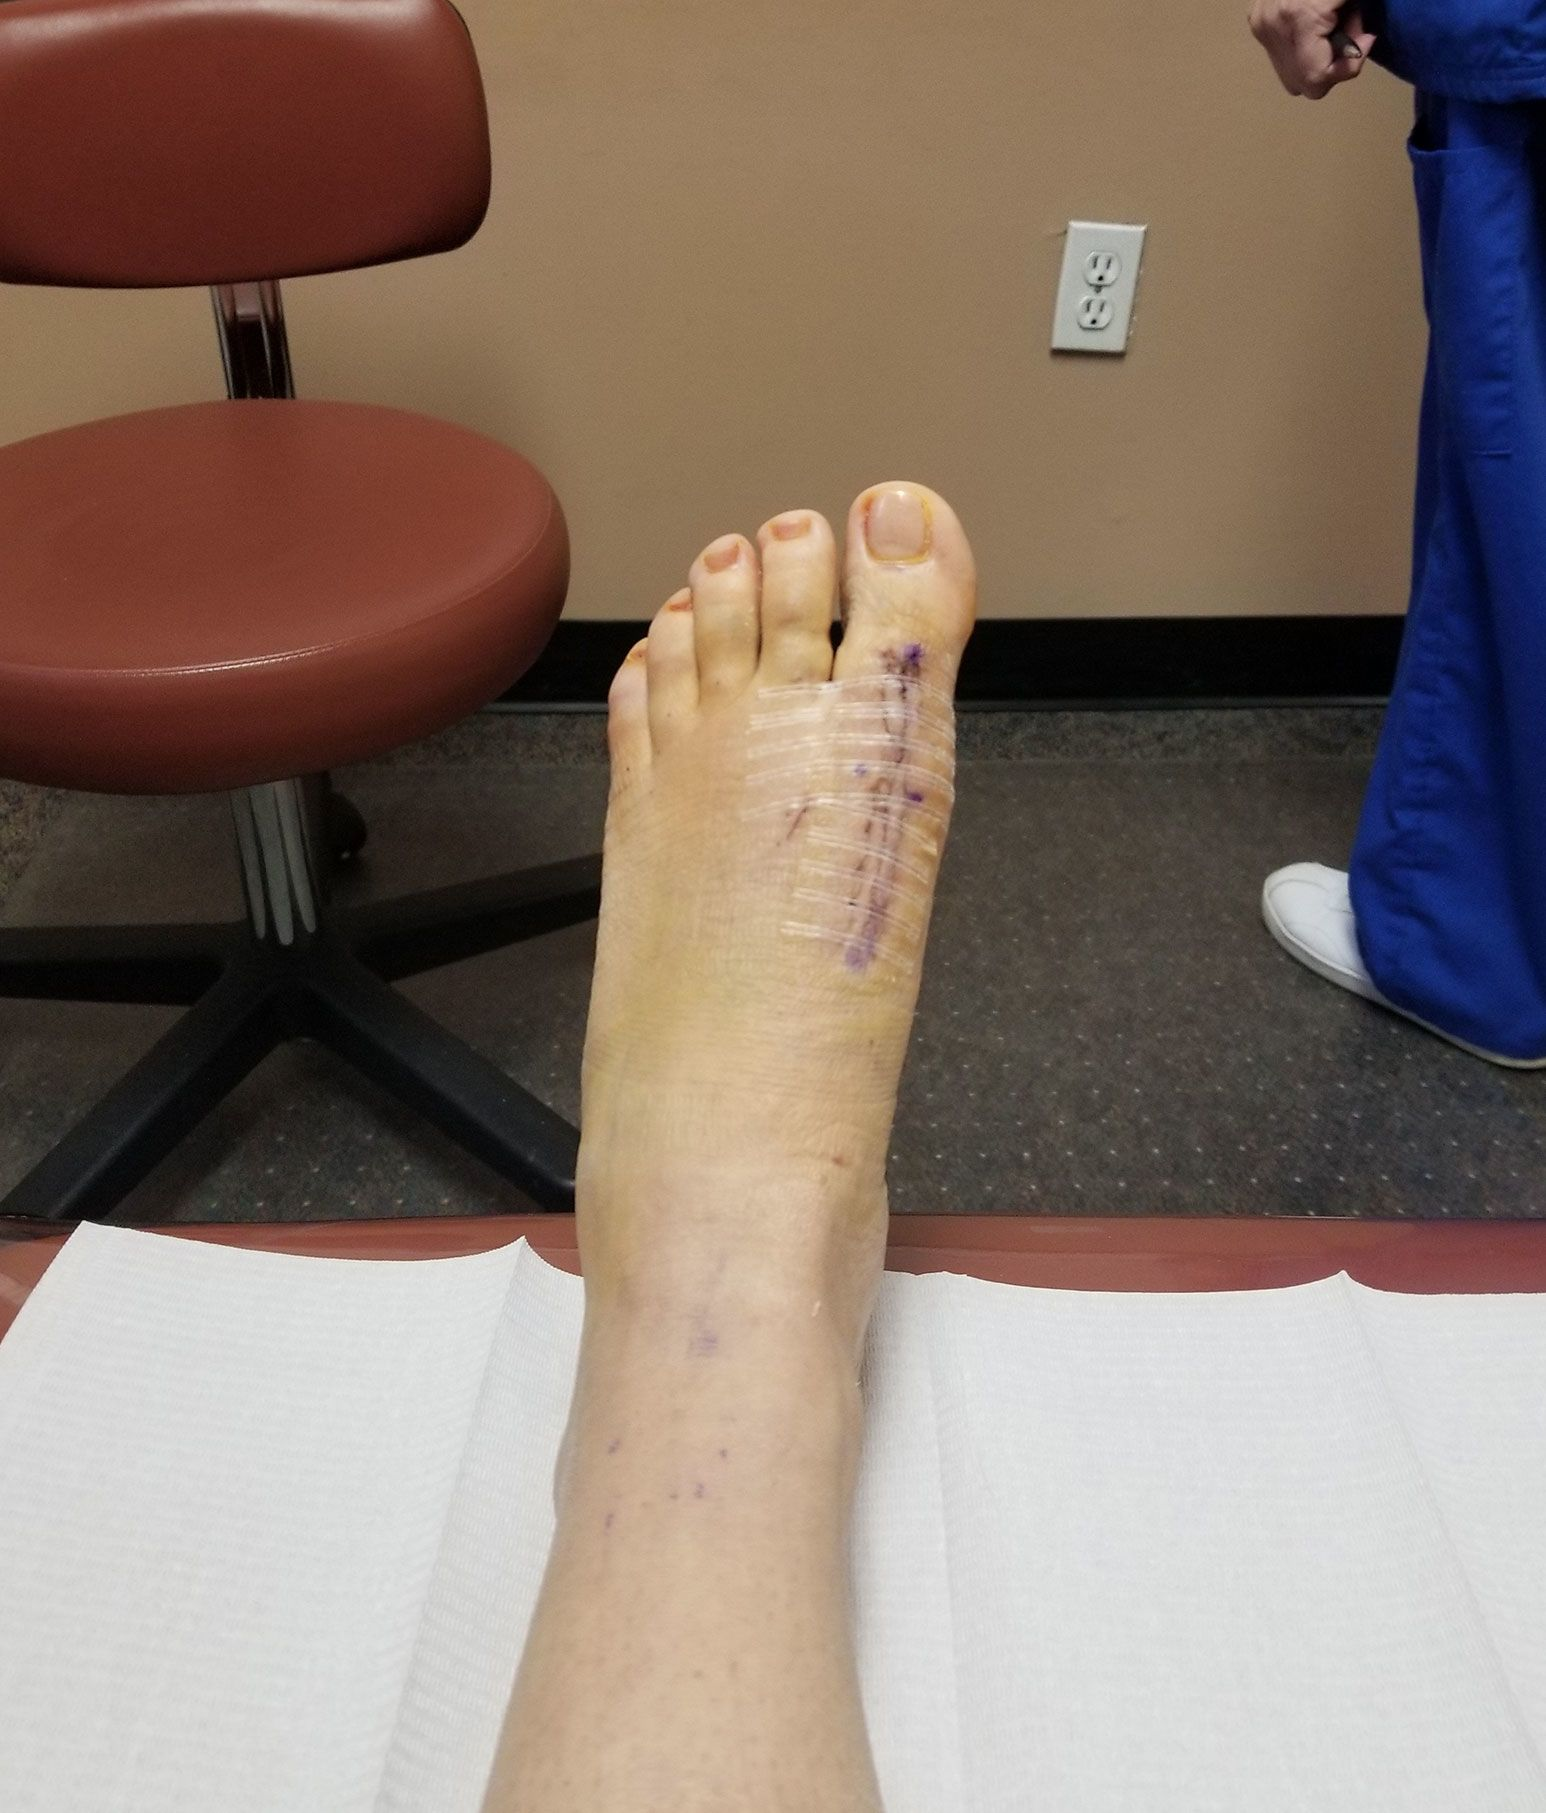 A foot rests over a white cover pointing towards the ceiling. The left foot has a huge scar with surgical tape over it.